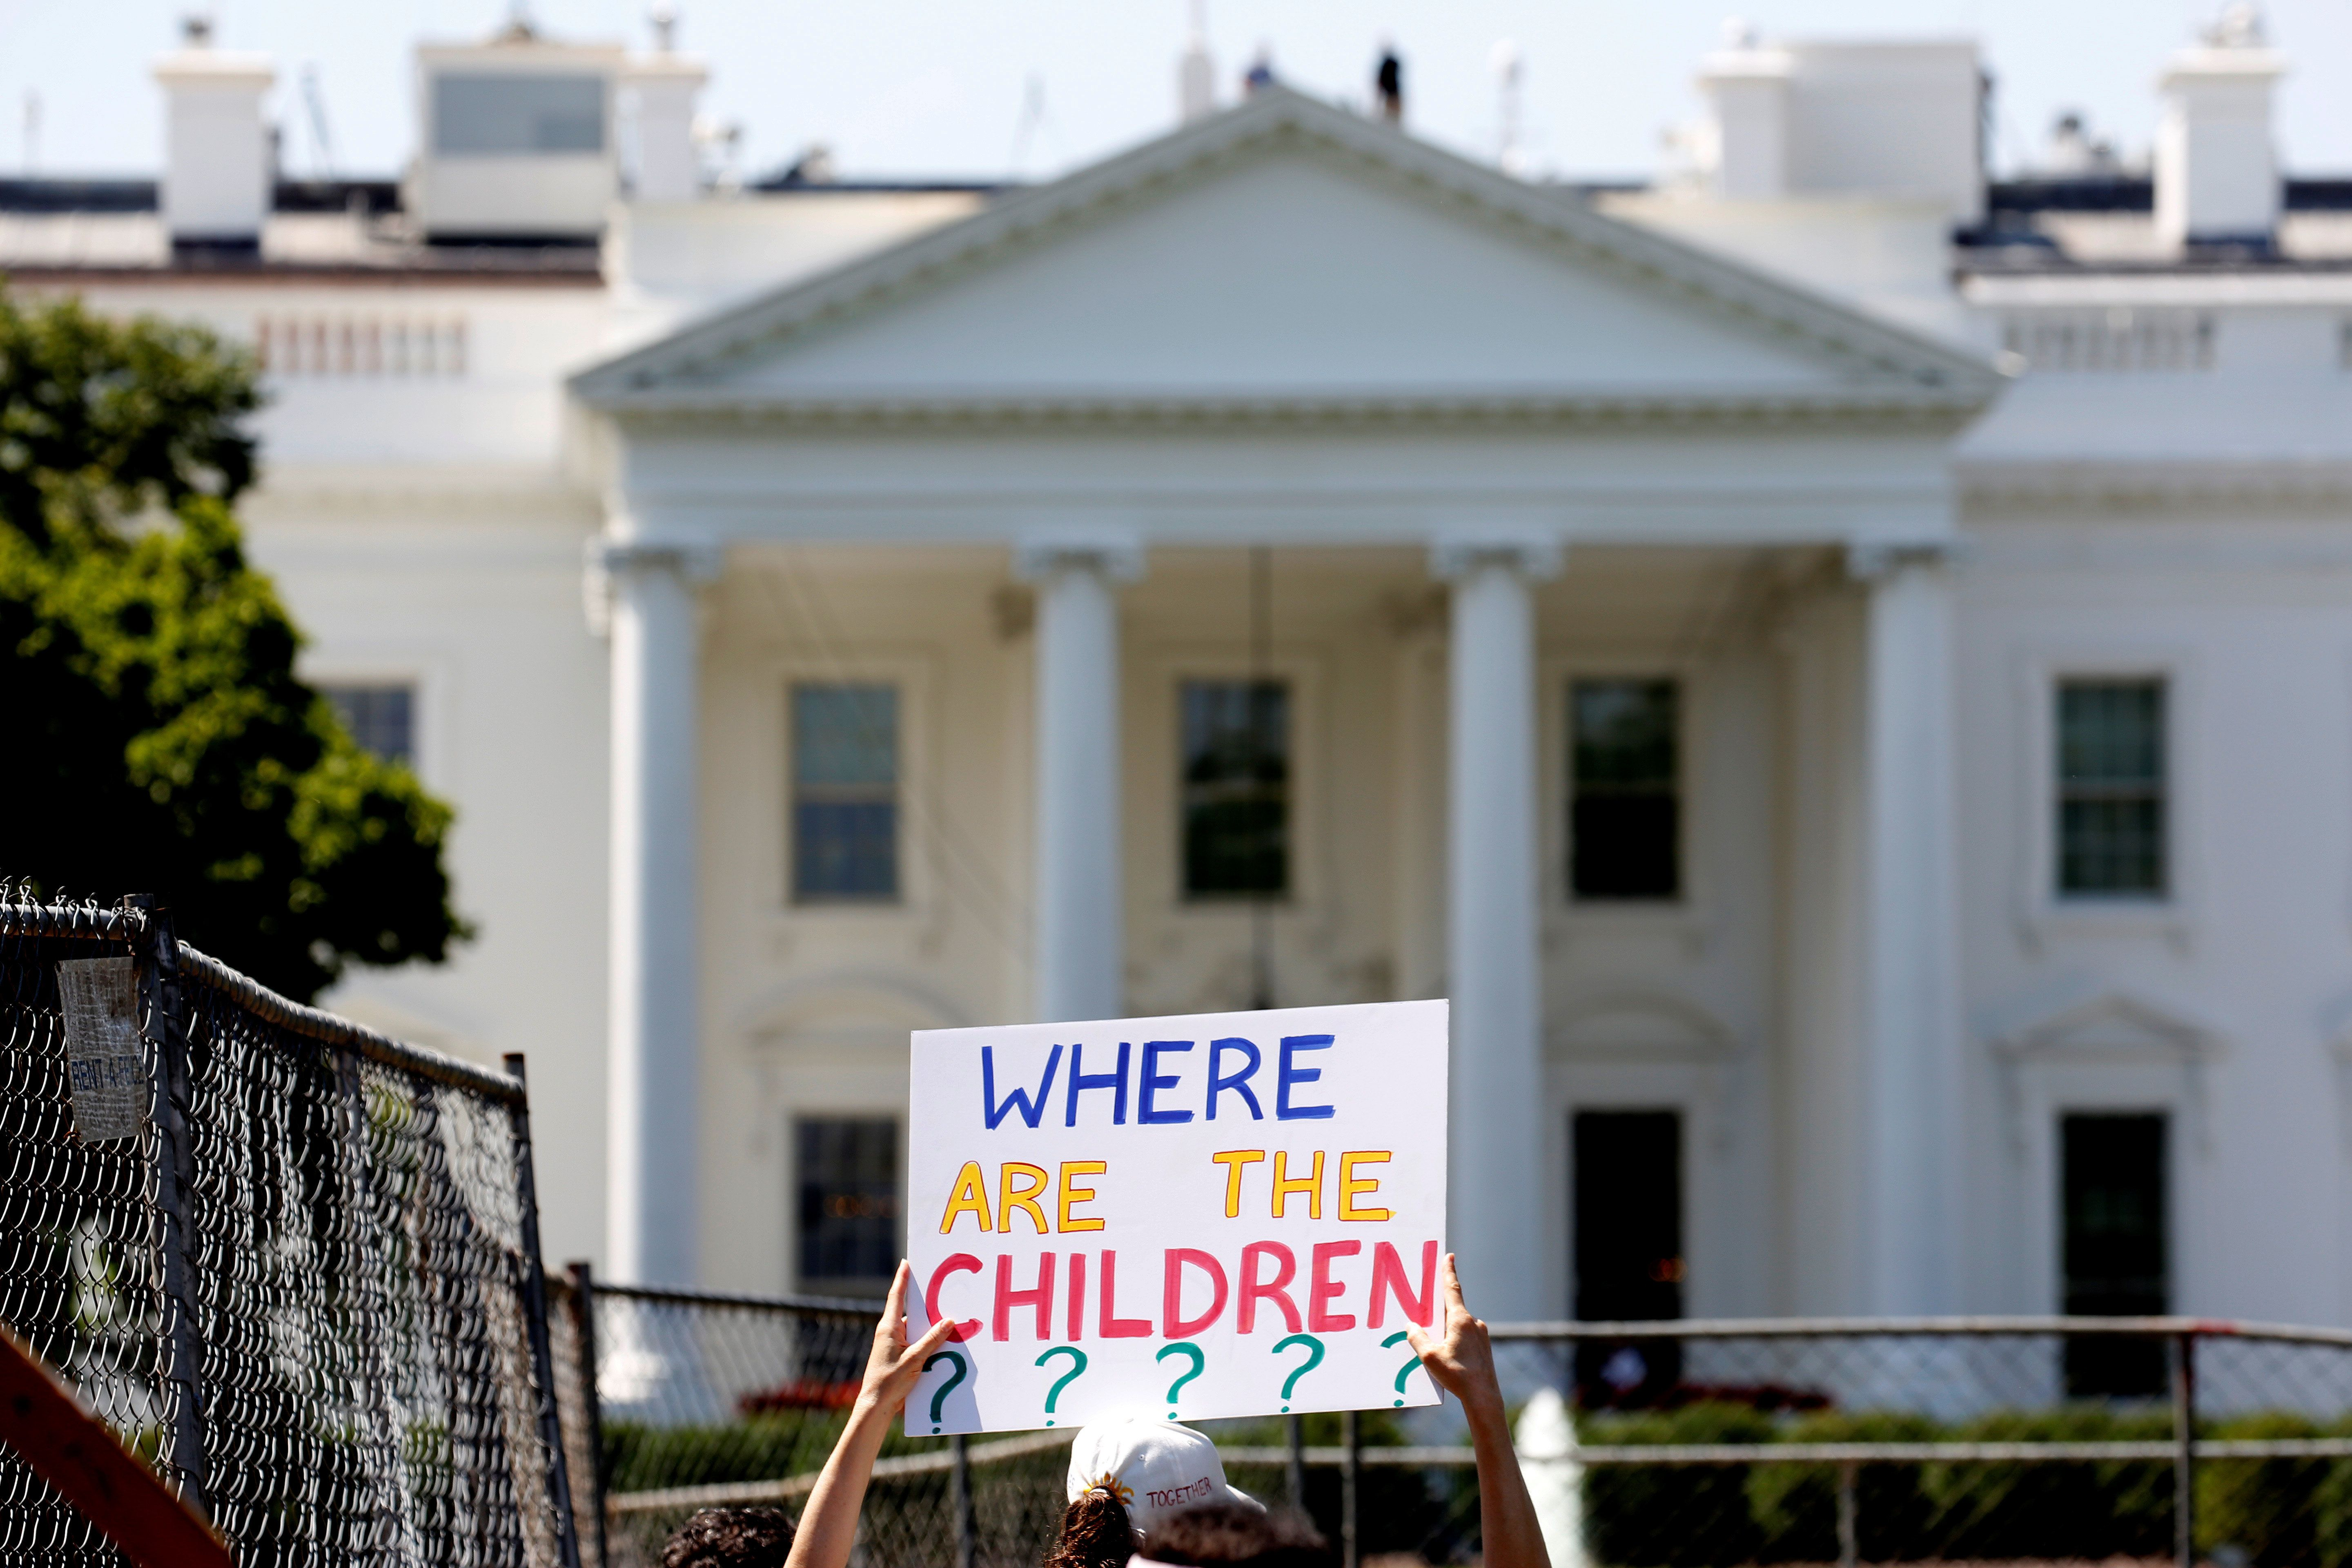 An immigration activists hold signs against family separation during a rally to protest against the Trump Administration's immigration policy outside the White House in Washington, U.S., June 30, 2018. REUTERS/Joshua Roberts